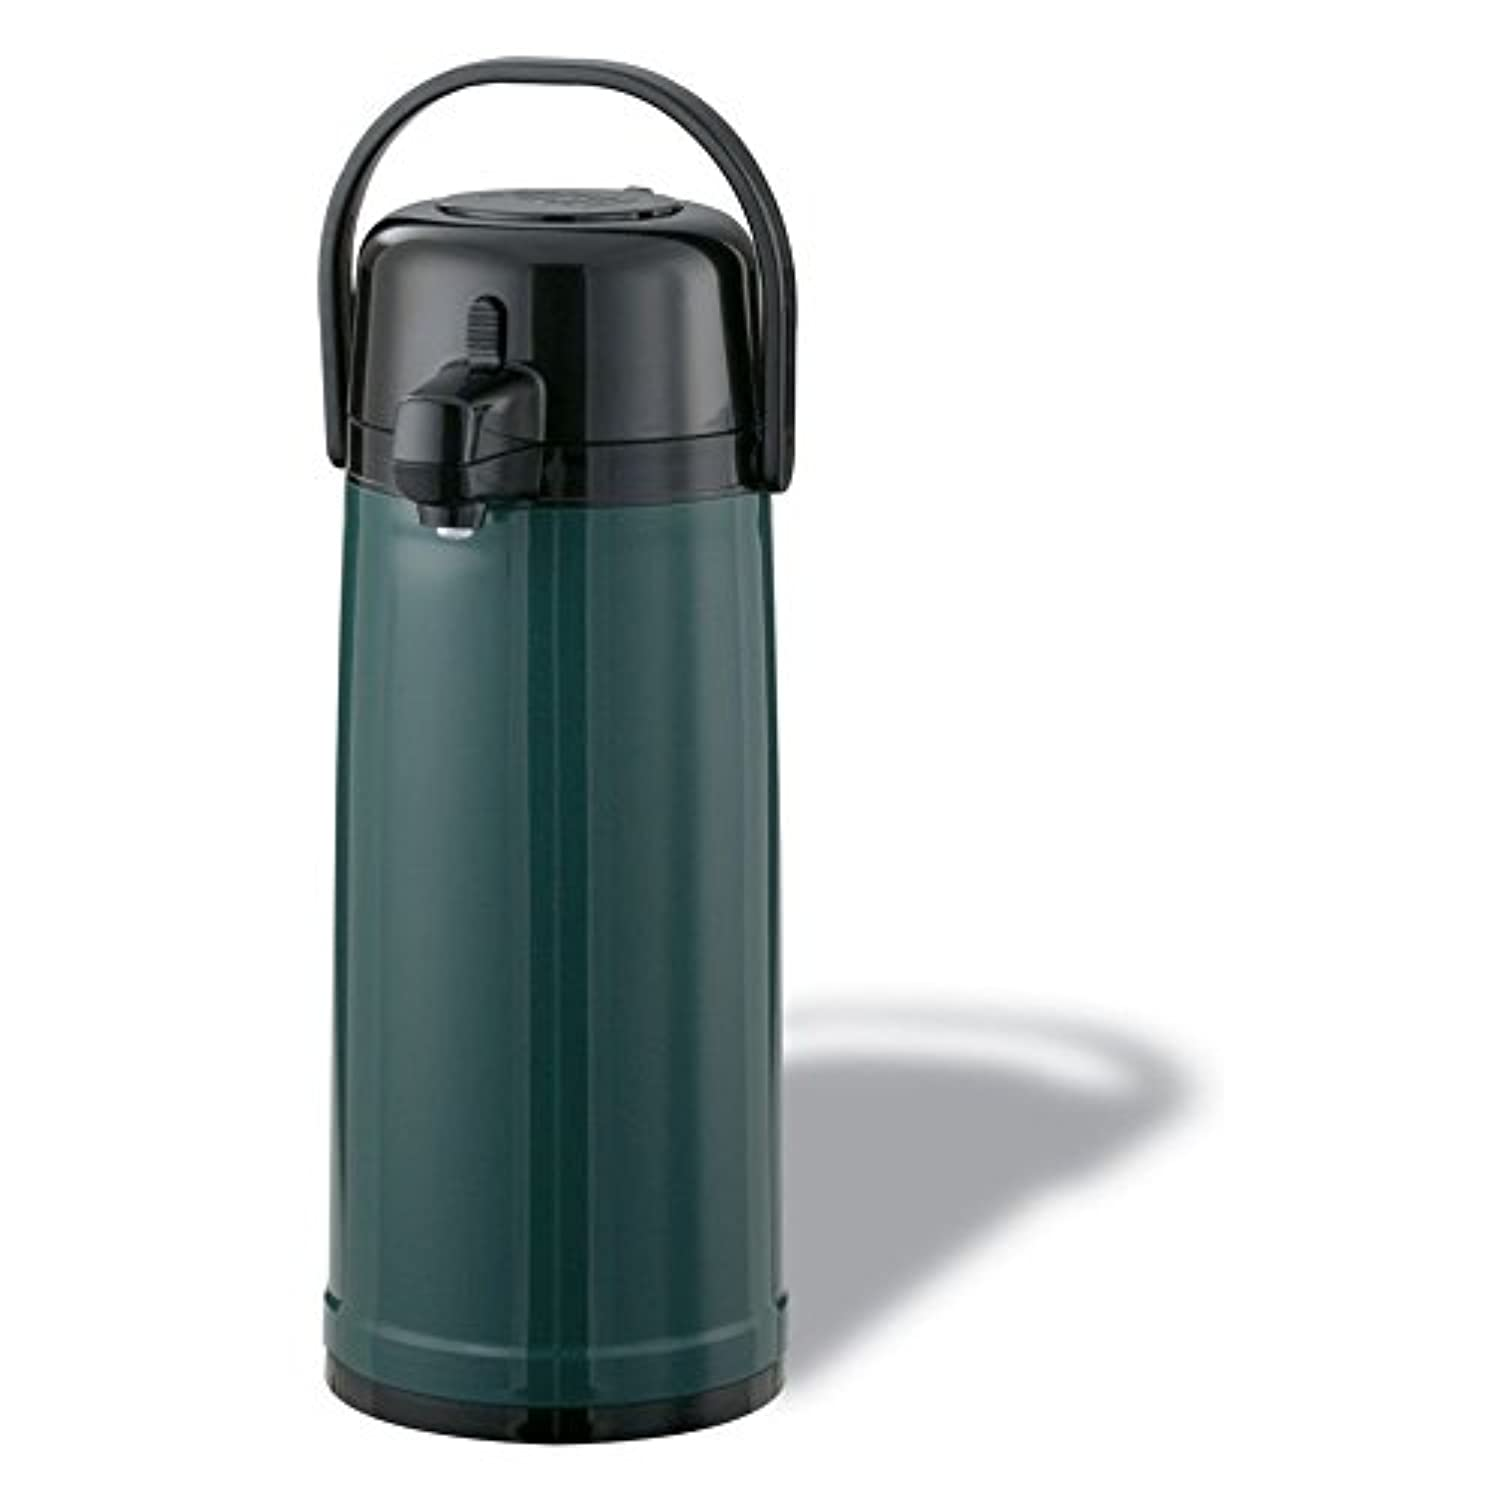 Service Ideas ECAS22S Eco-Air Airpot with Pump, Stainless Steel Lined, 2.4 L [並行輸入品]